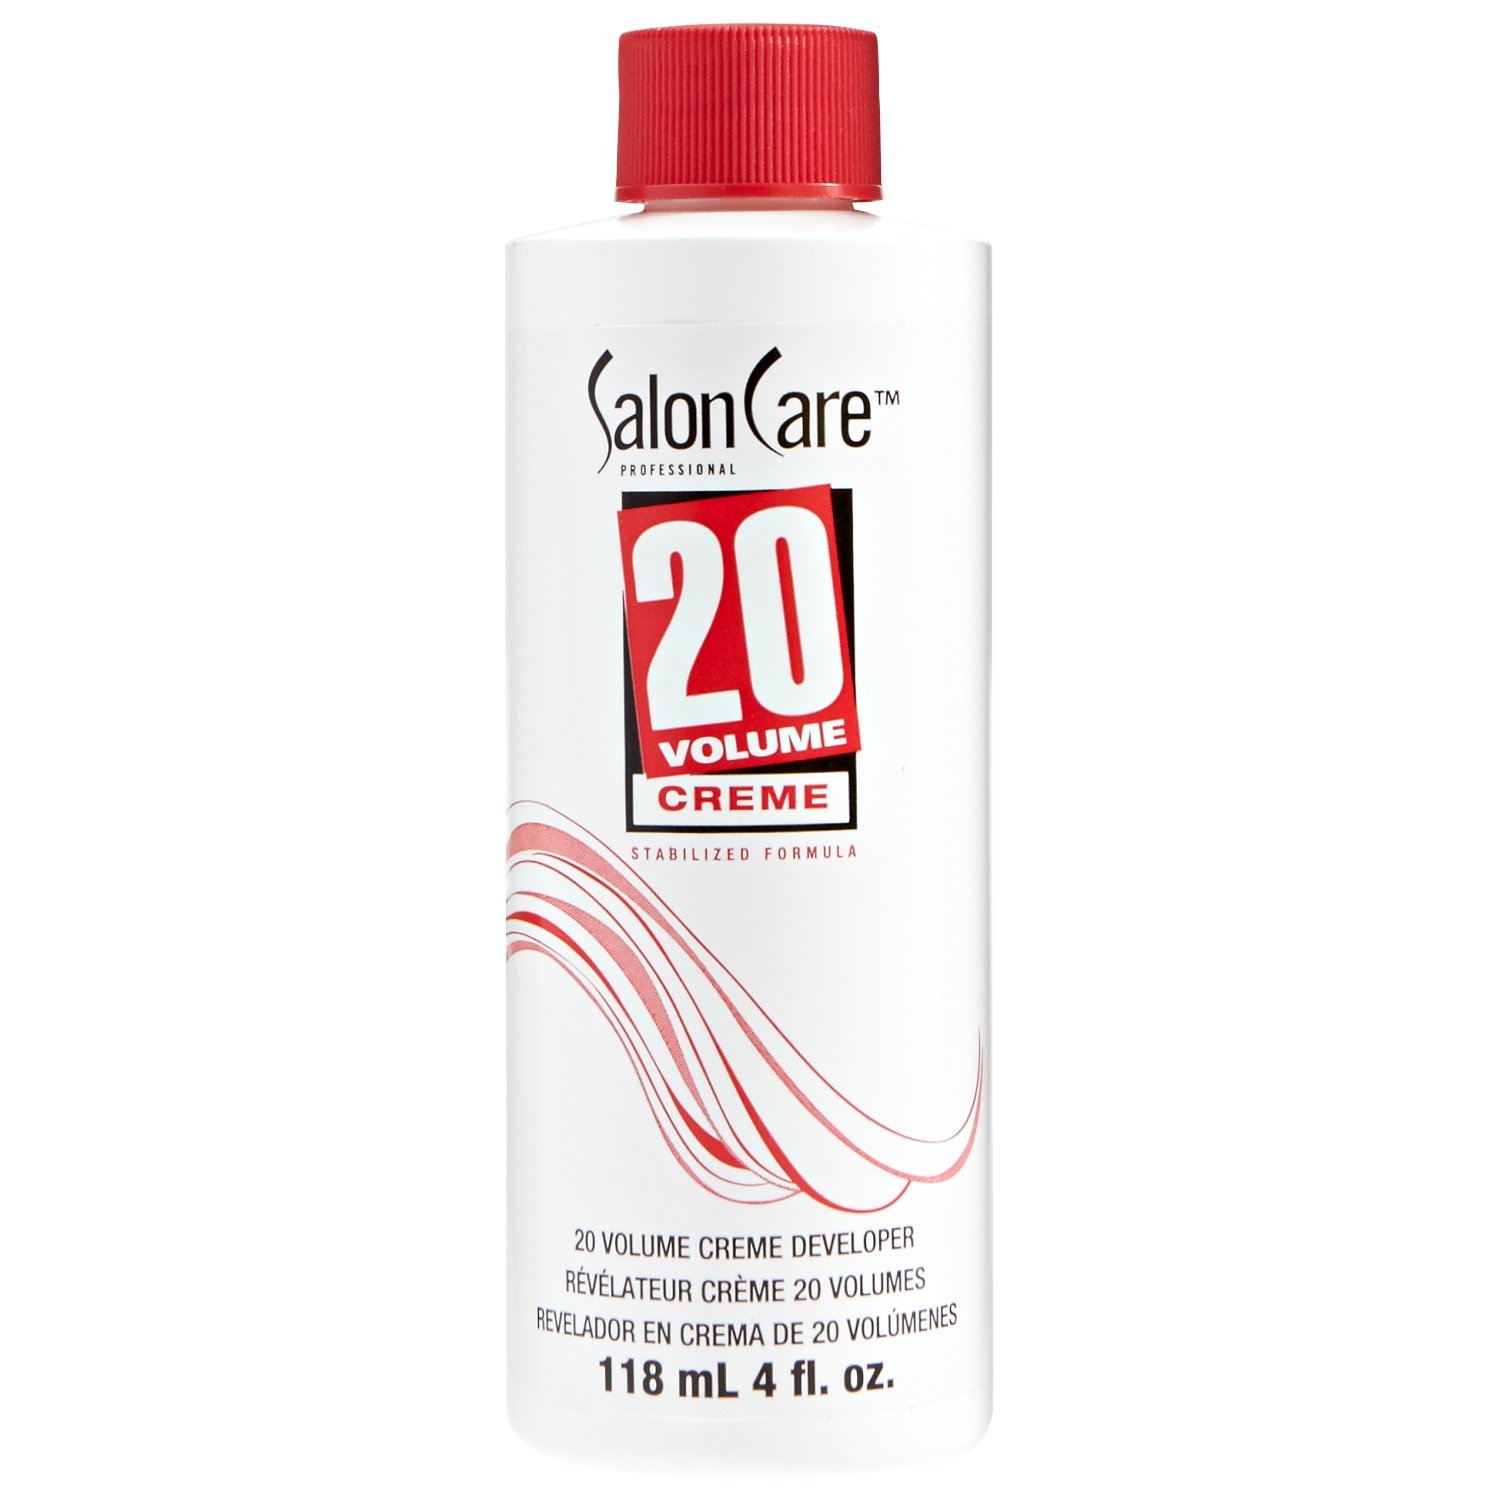 20 Volume Creme Developer 4 oz by Salon Care